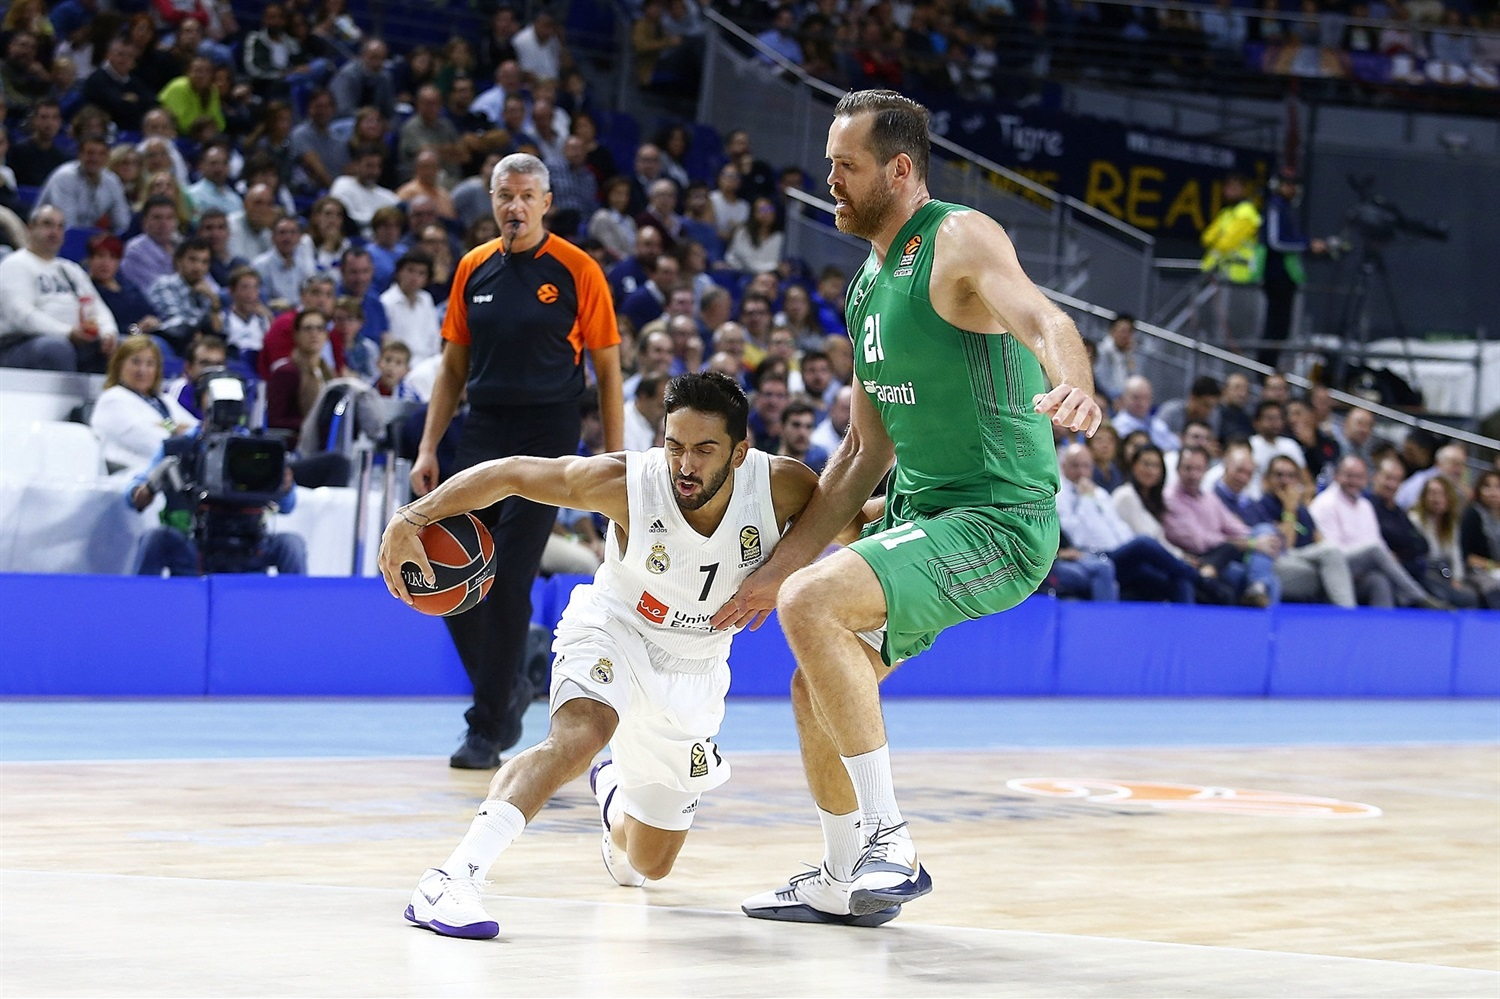 Facundo Campazzo - Real Madrid - EB18